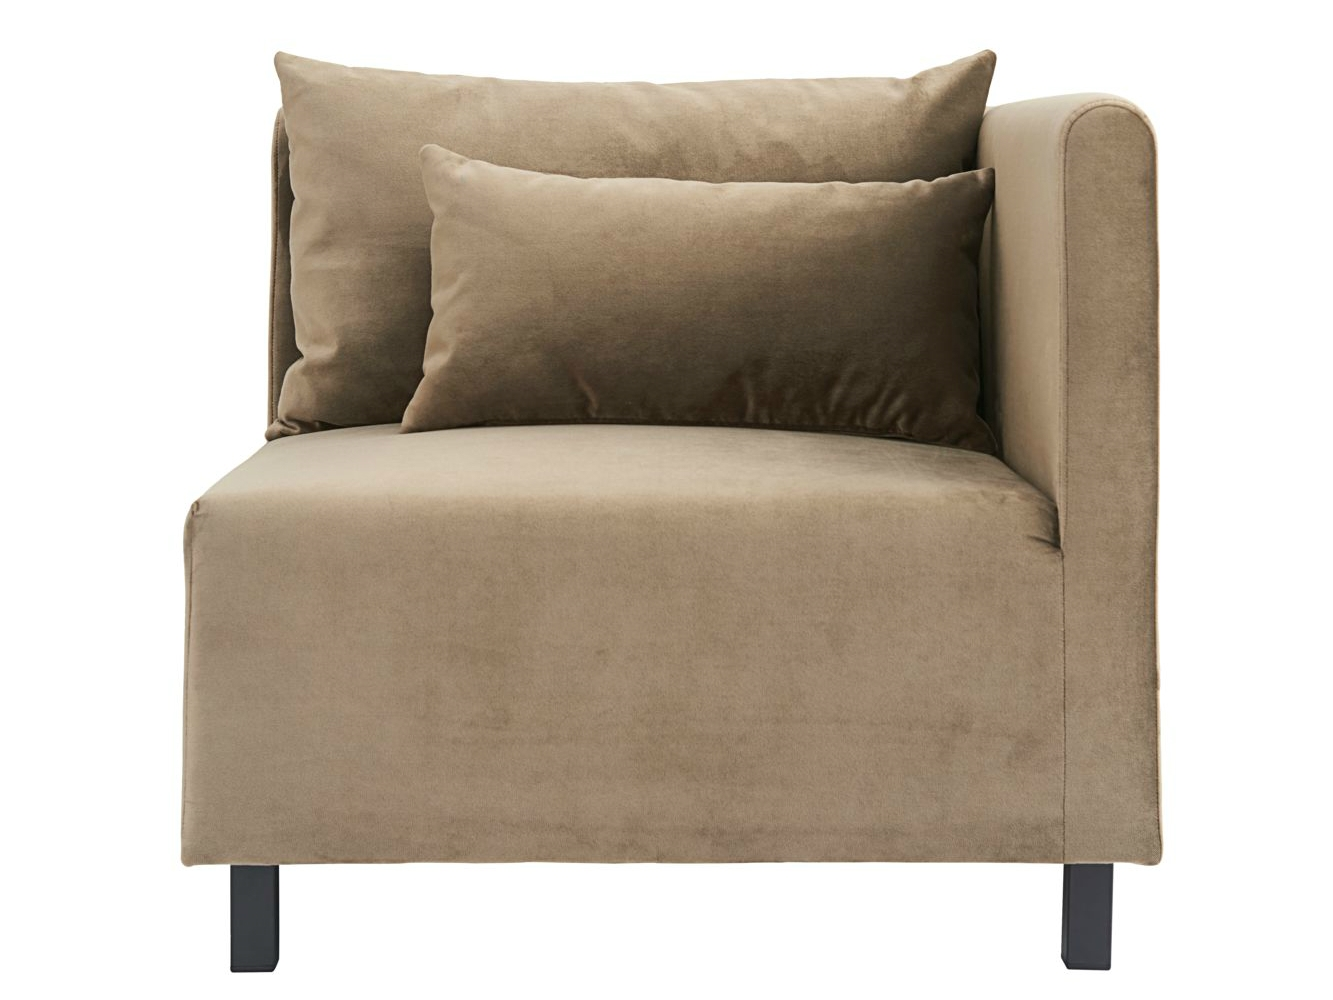 Housedoctor-bank-sofa-element-zand-bruin-hoekelement-85x85x77cm-def